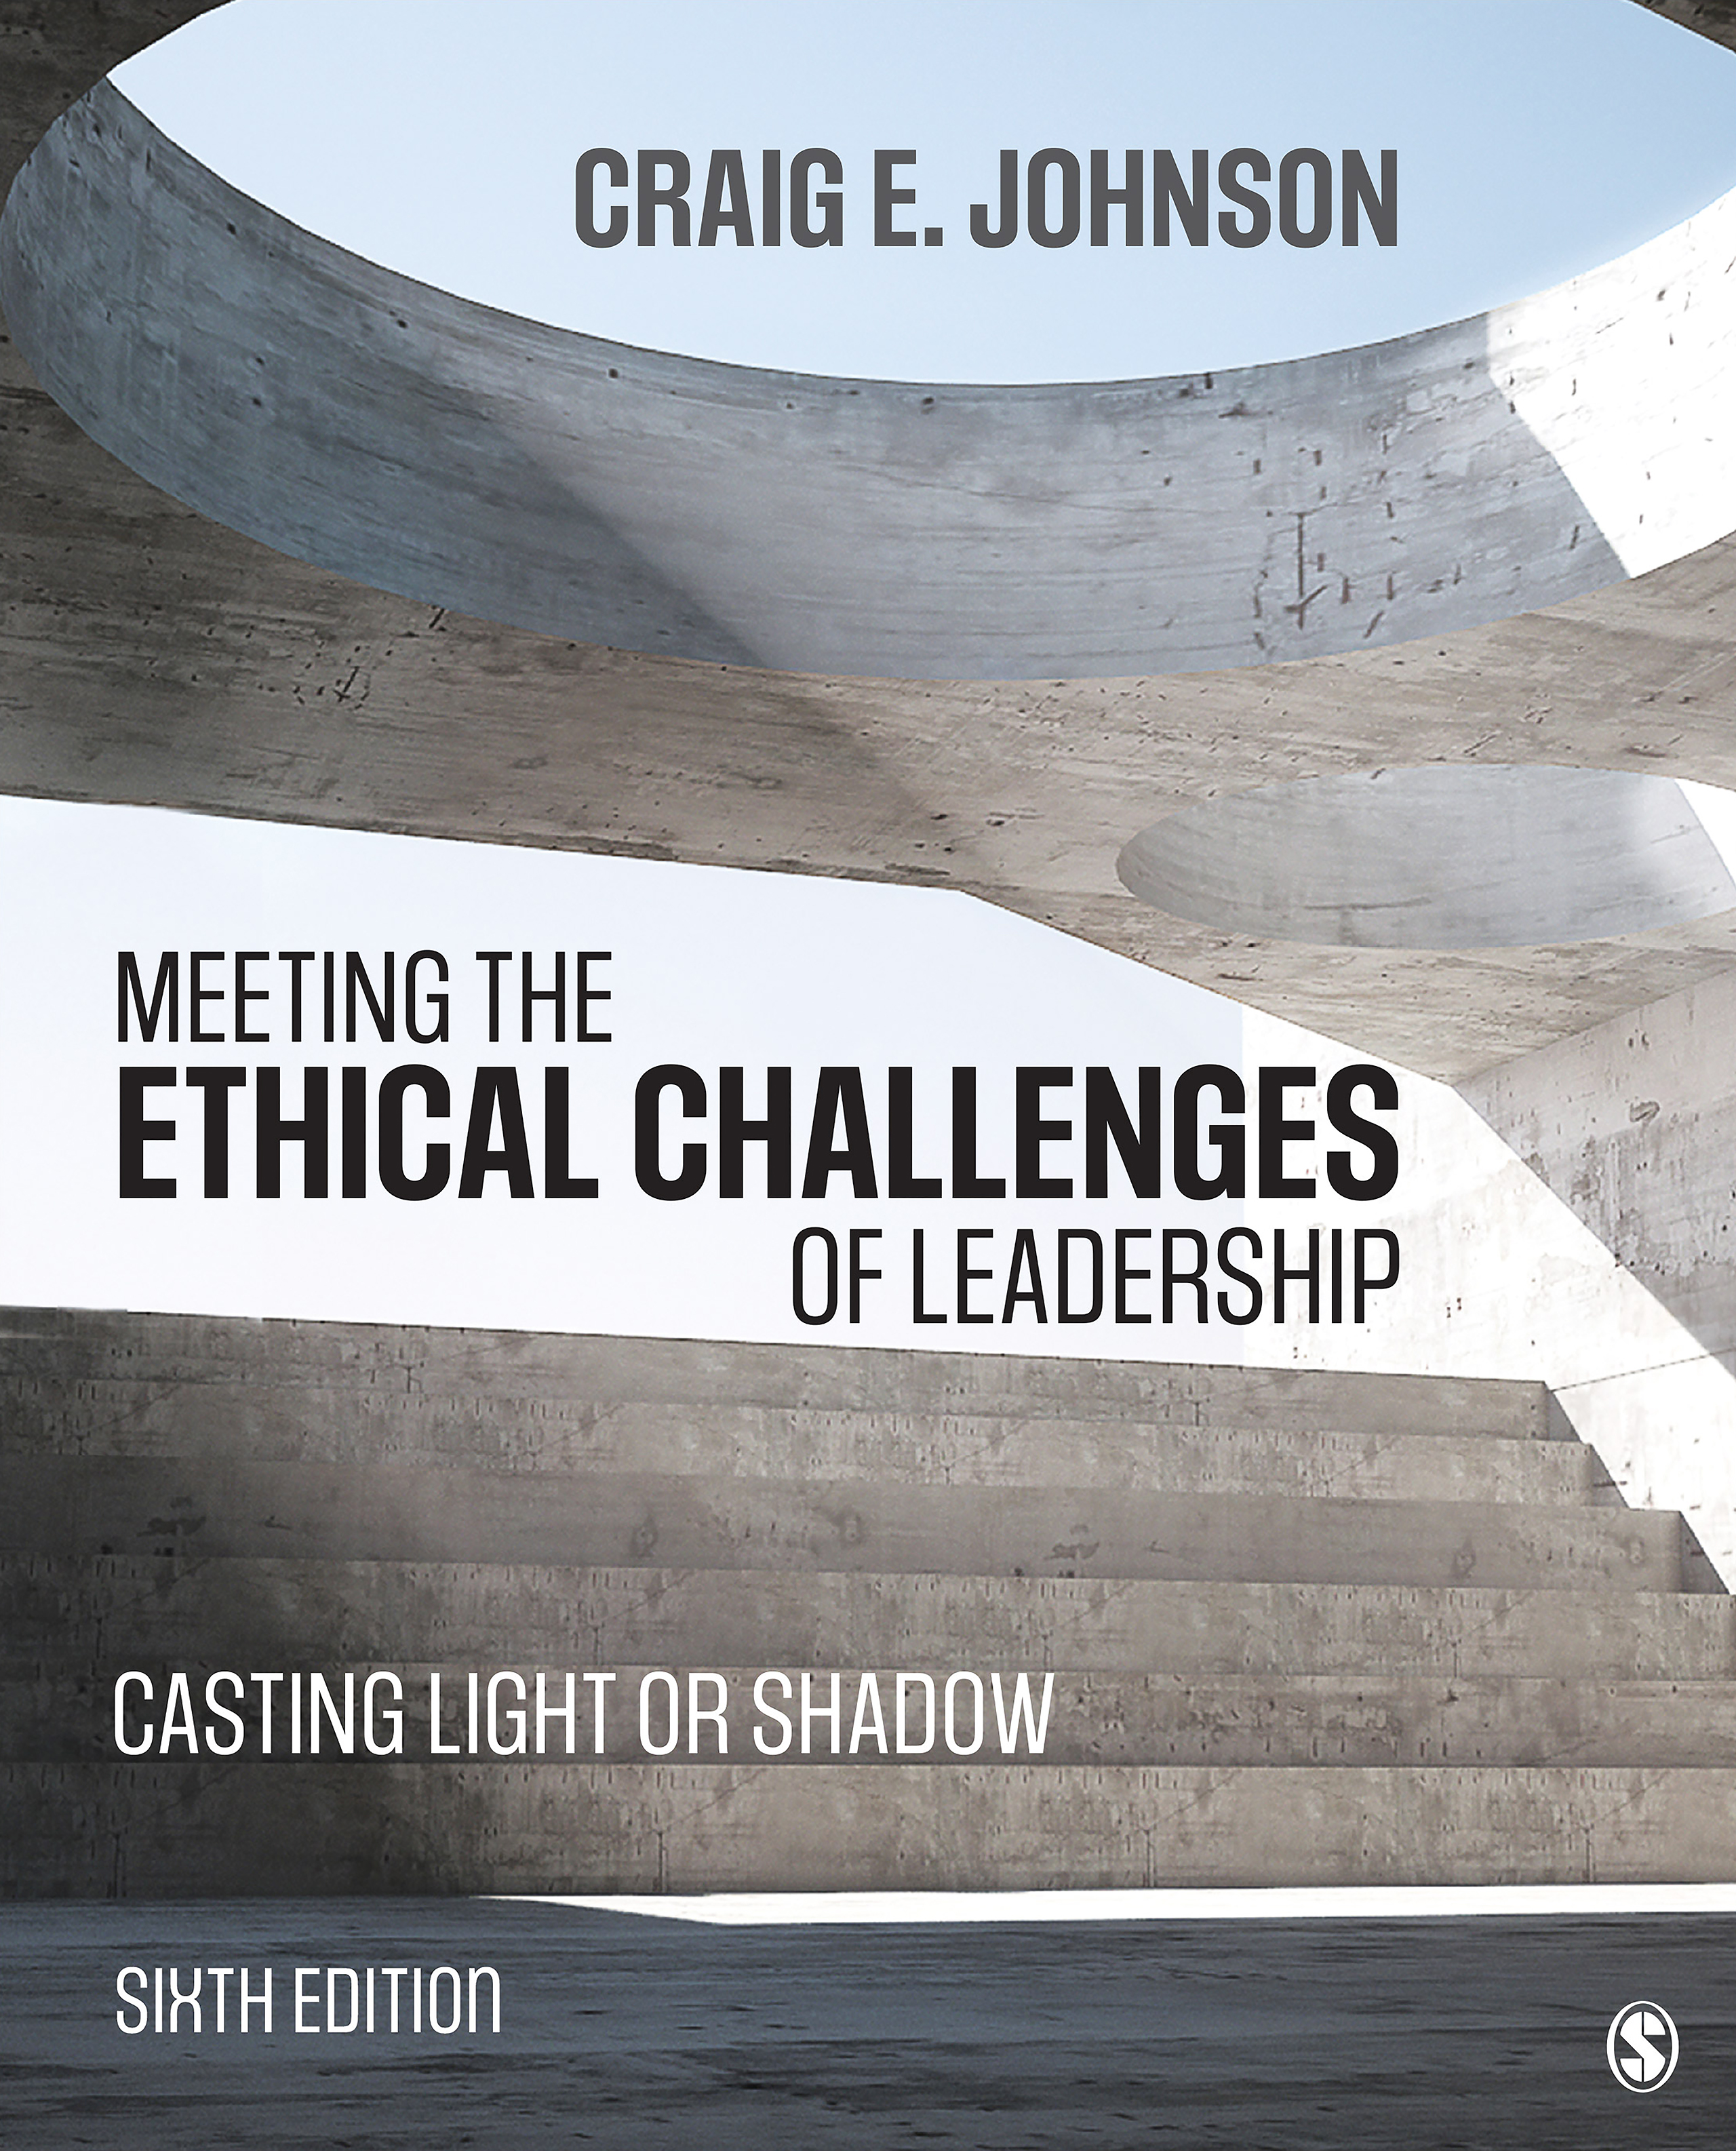 Download Ebook Meeting the Ethical Challenges of Leadership (6th ed.) by Craig E. Johnson Pdf